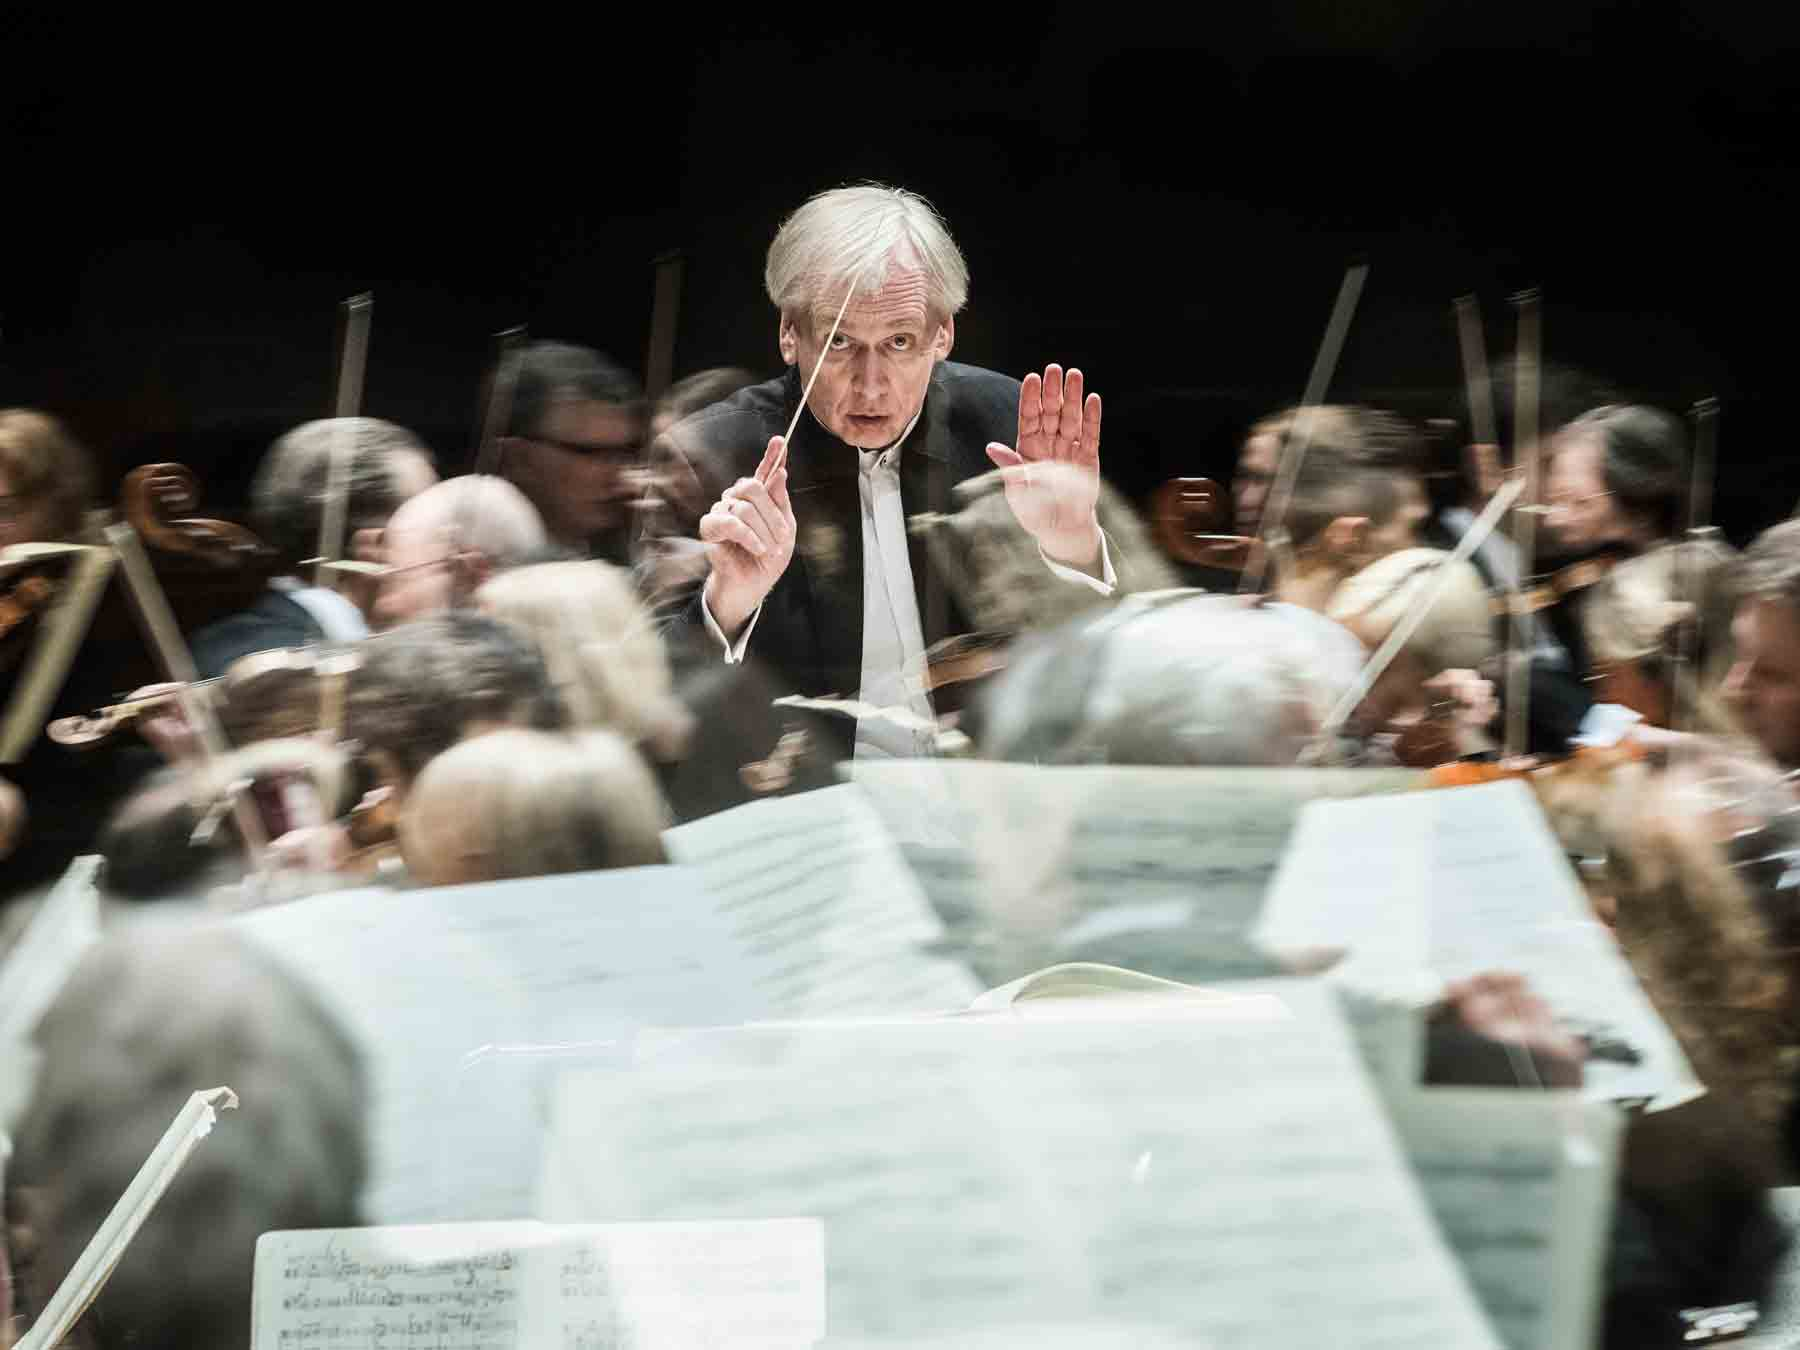 Lithuanian State Symphony Orchestra, Conductor Gintaras Rinkevičius